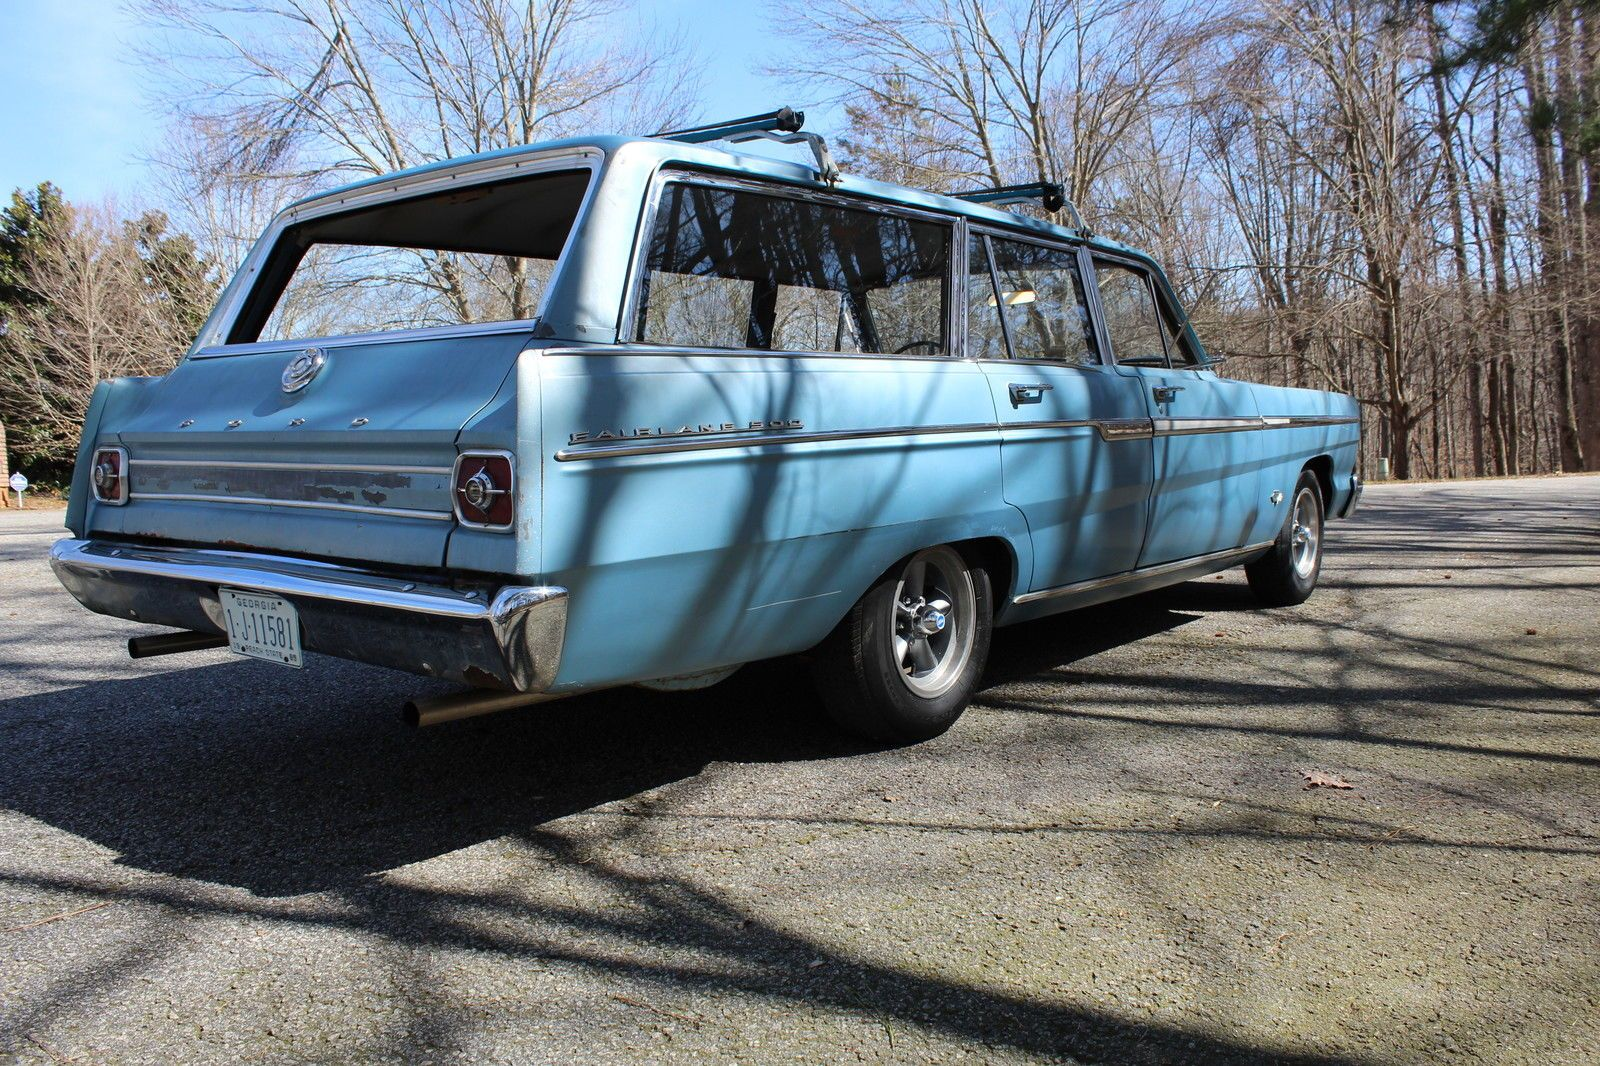 65 Ford Fairlane 500 Station Wagon Ford Fairlane Fairlane